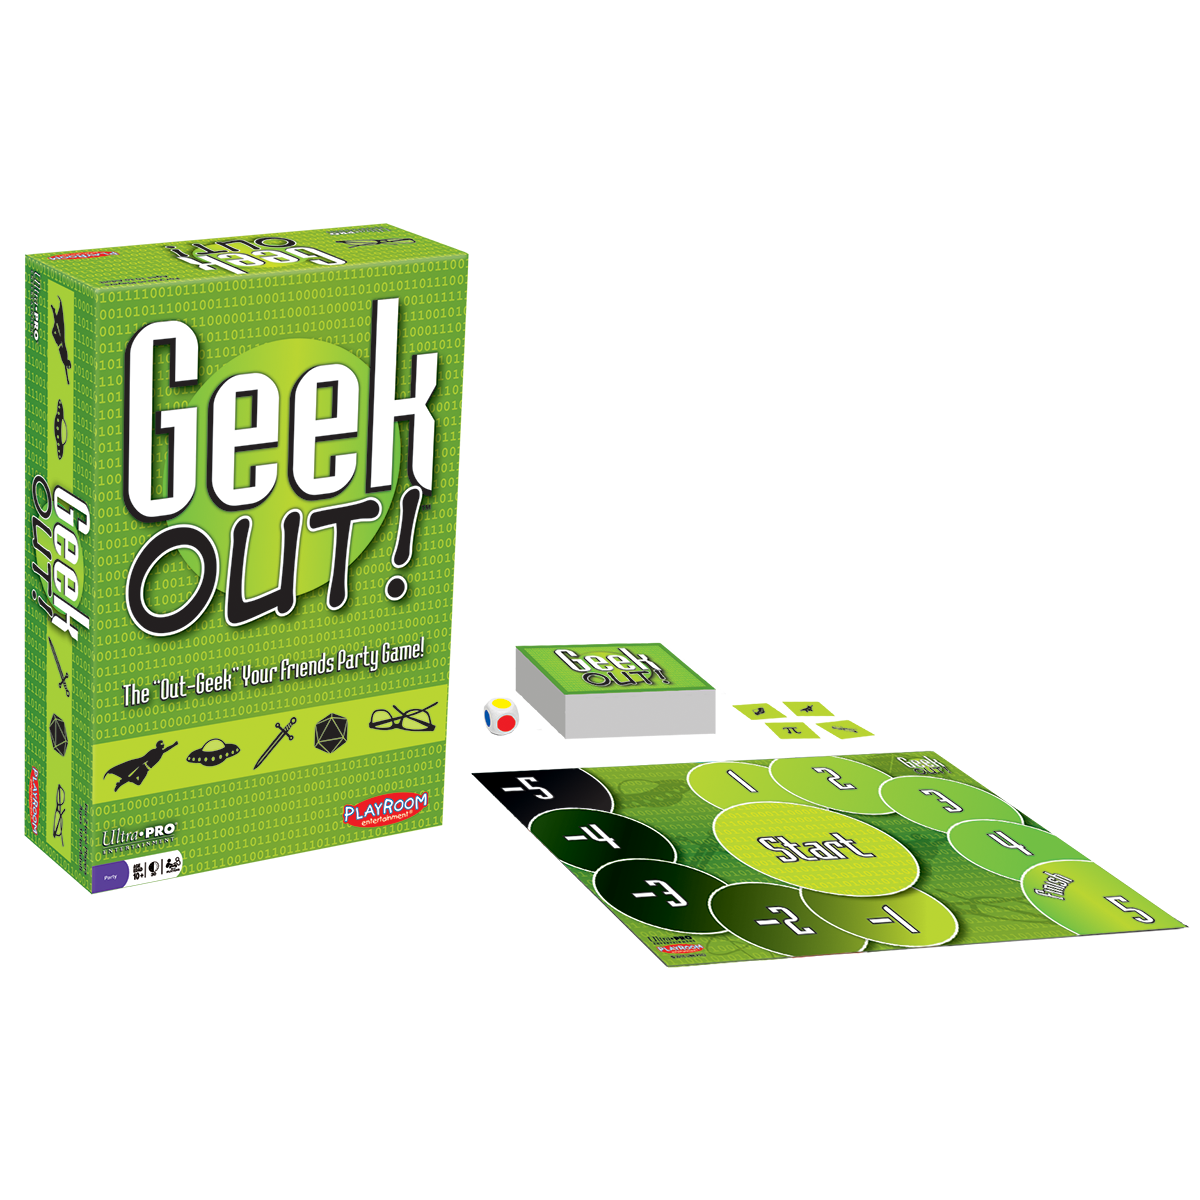 TableTop Limited Edition by Playroom Entertainment Geek Out